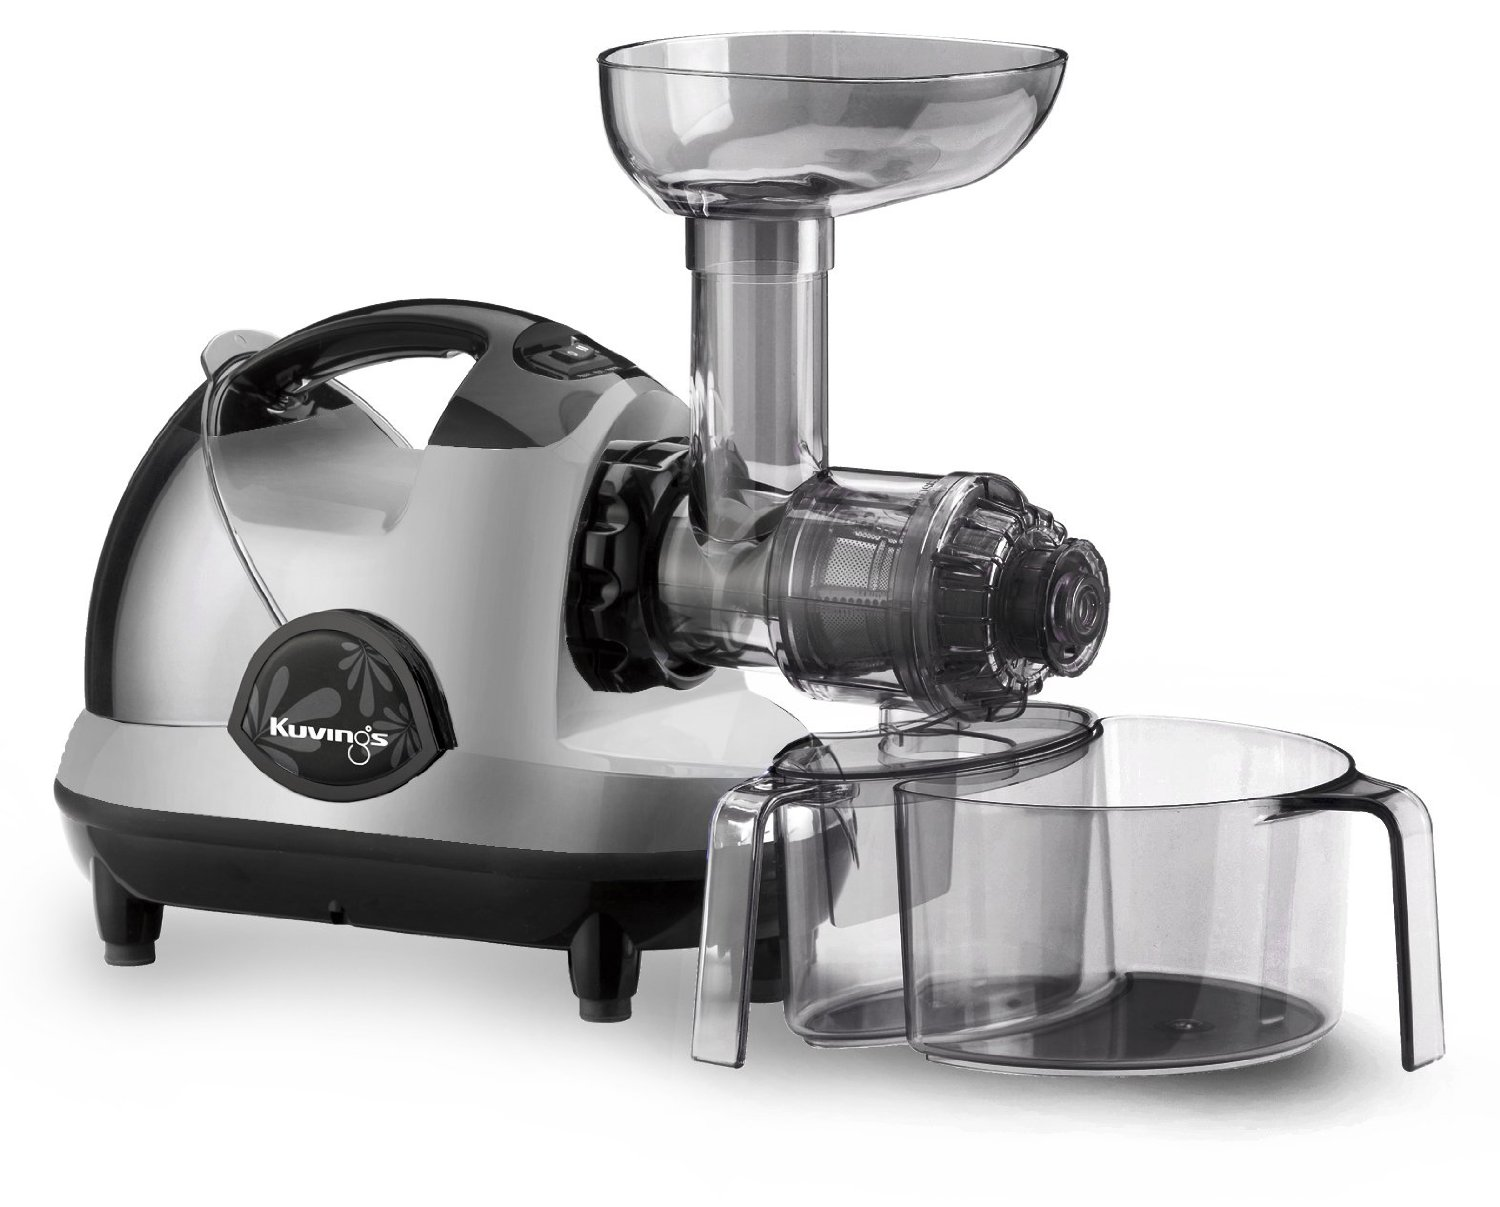 Best Masticating Juicer For Home : Kuvings NJE3580U Masticating Slow Juicer